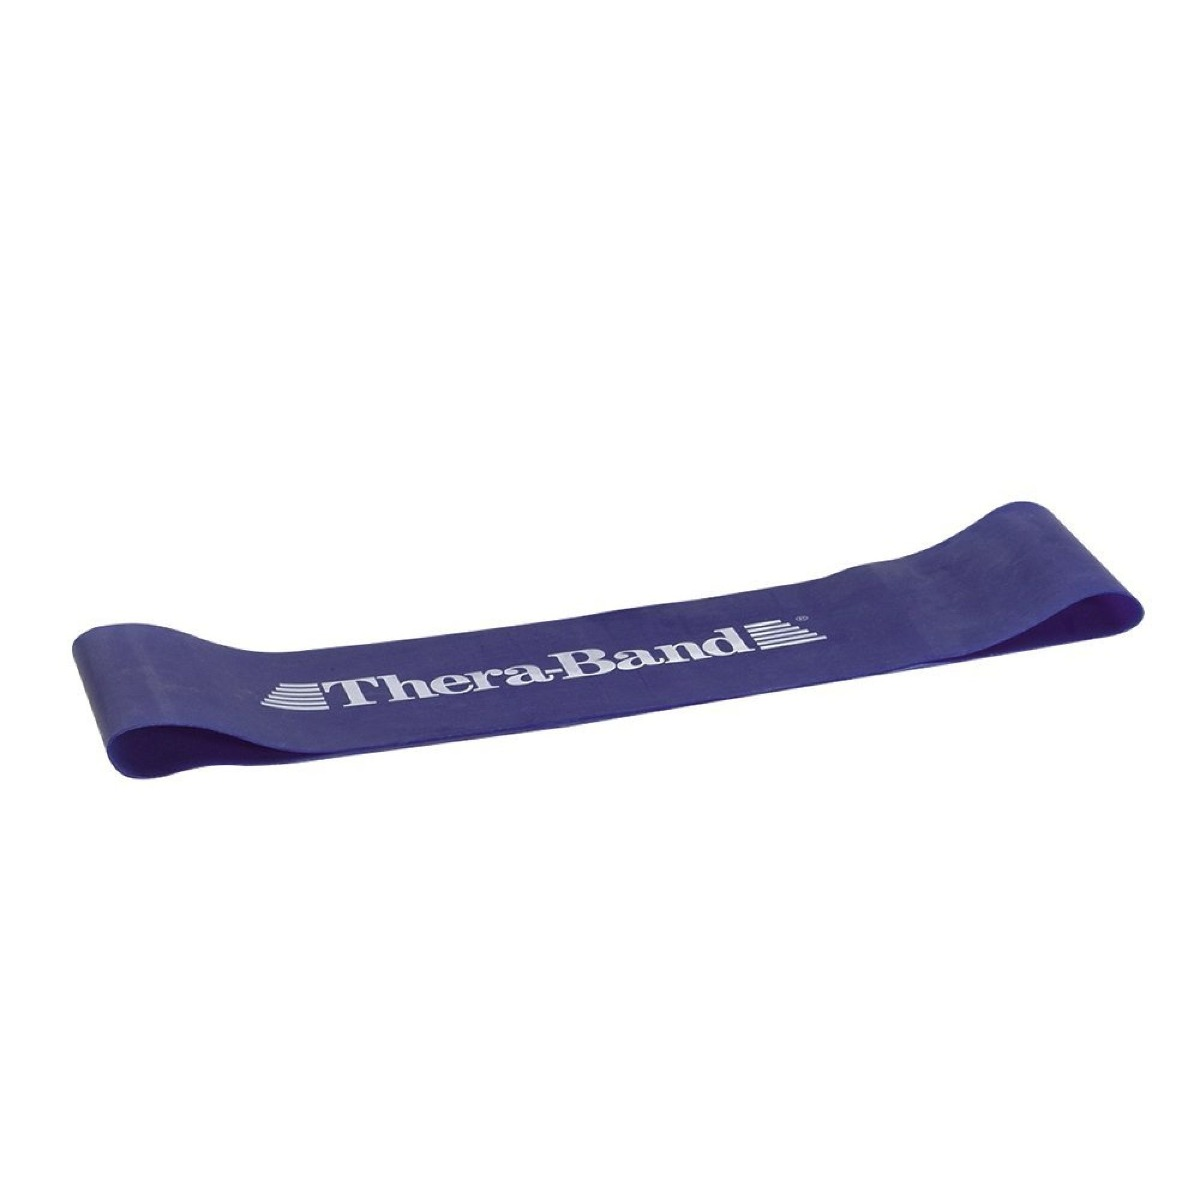 "TheraBand Loops, 12"" Flat, Level 4, Blue, Extra Heavy"